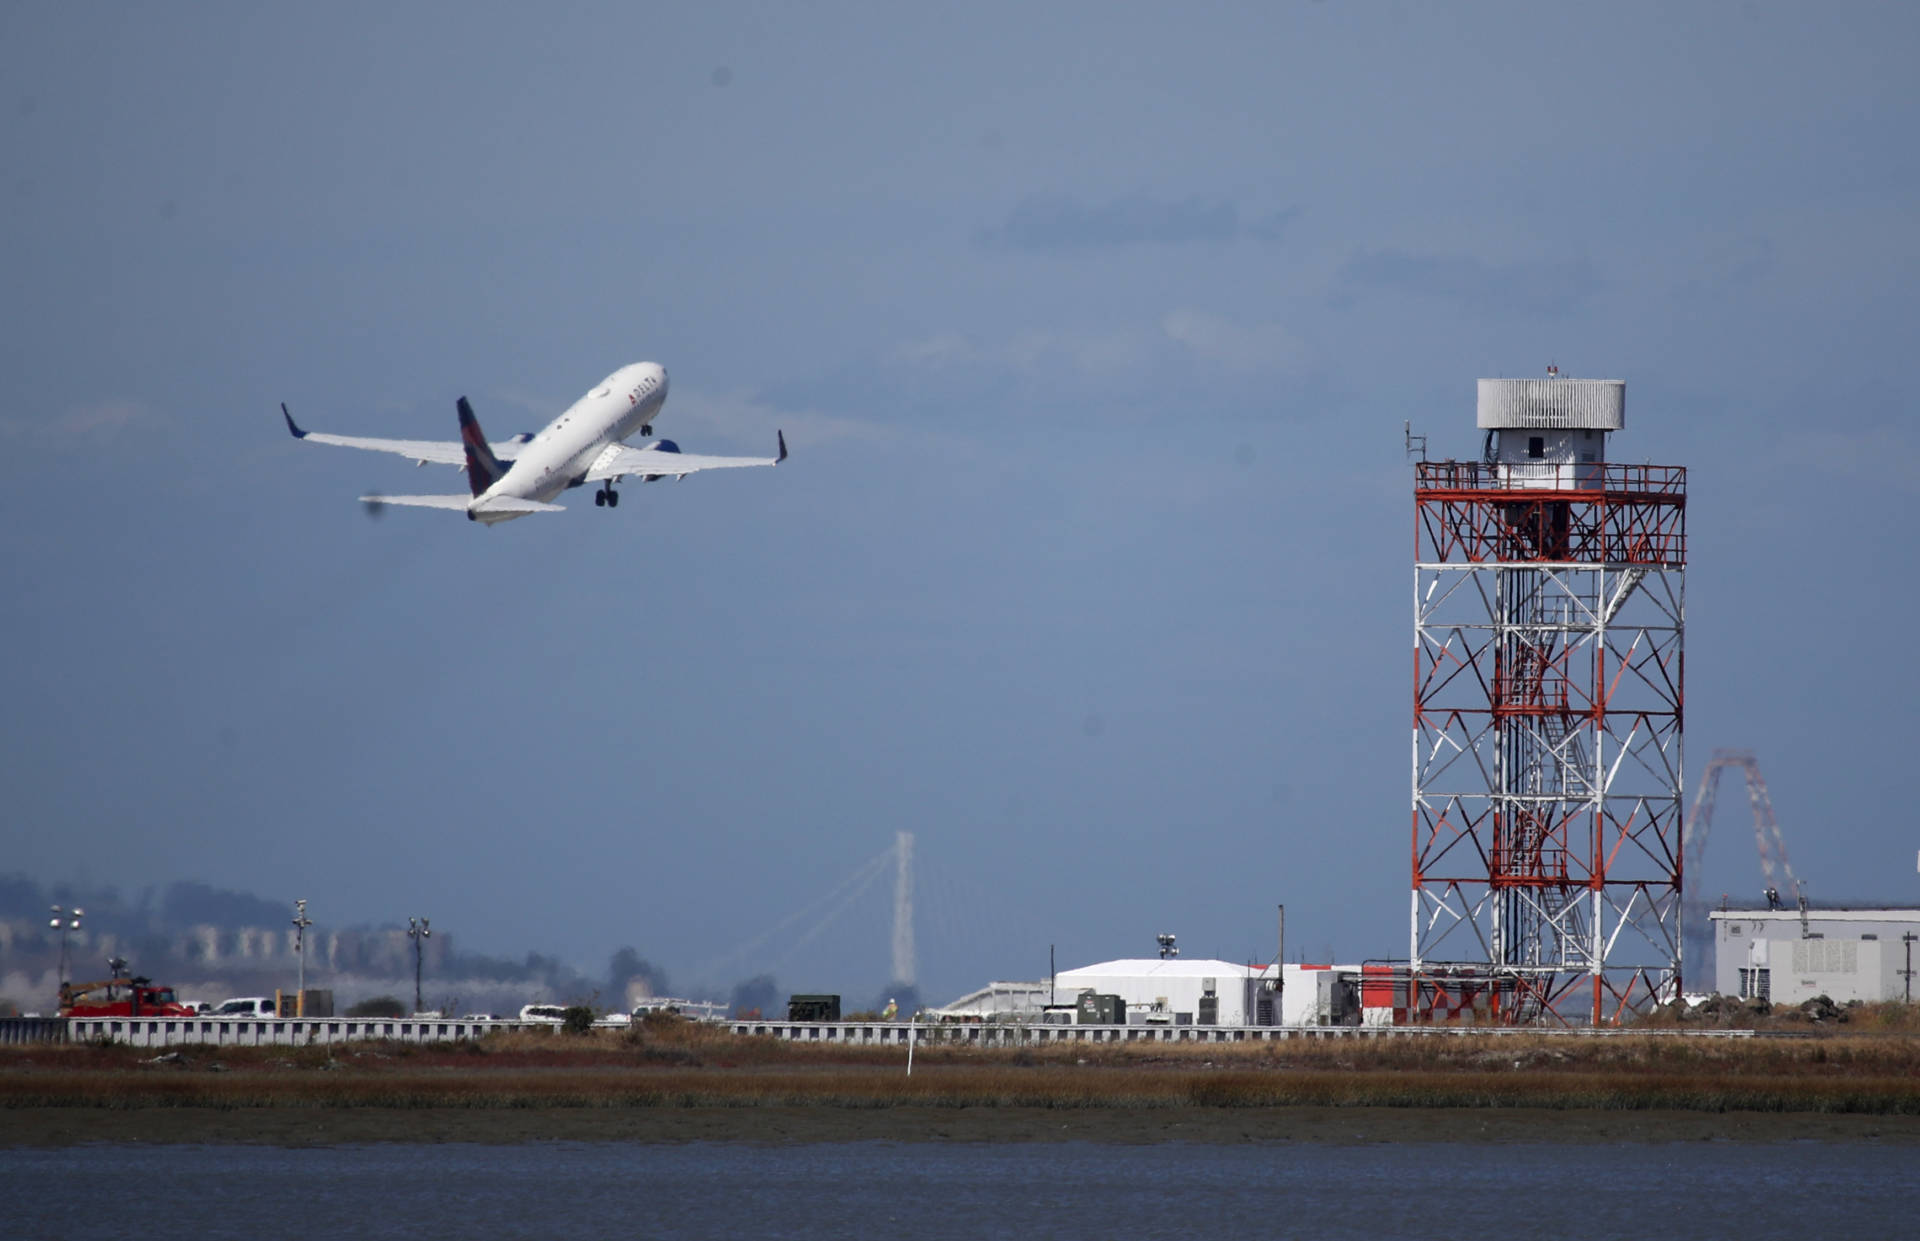 A plane takes off from San Francisco International Airport on Sept. 9, 2019. Justin Sullivan/Getty Images